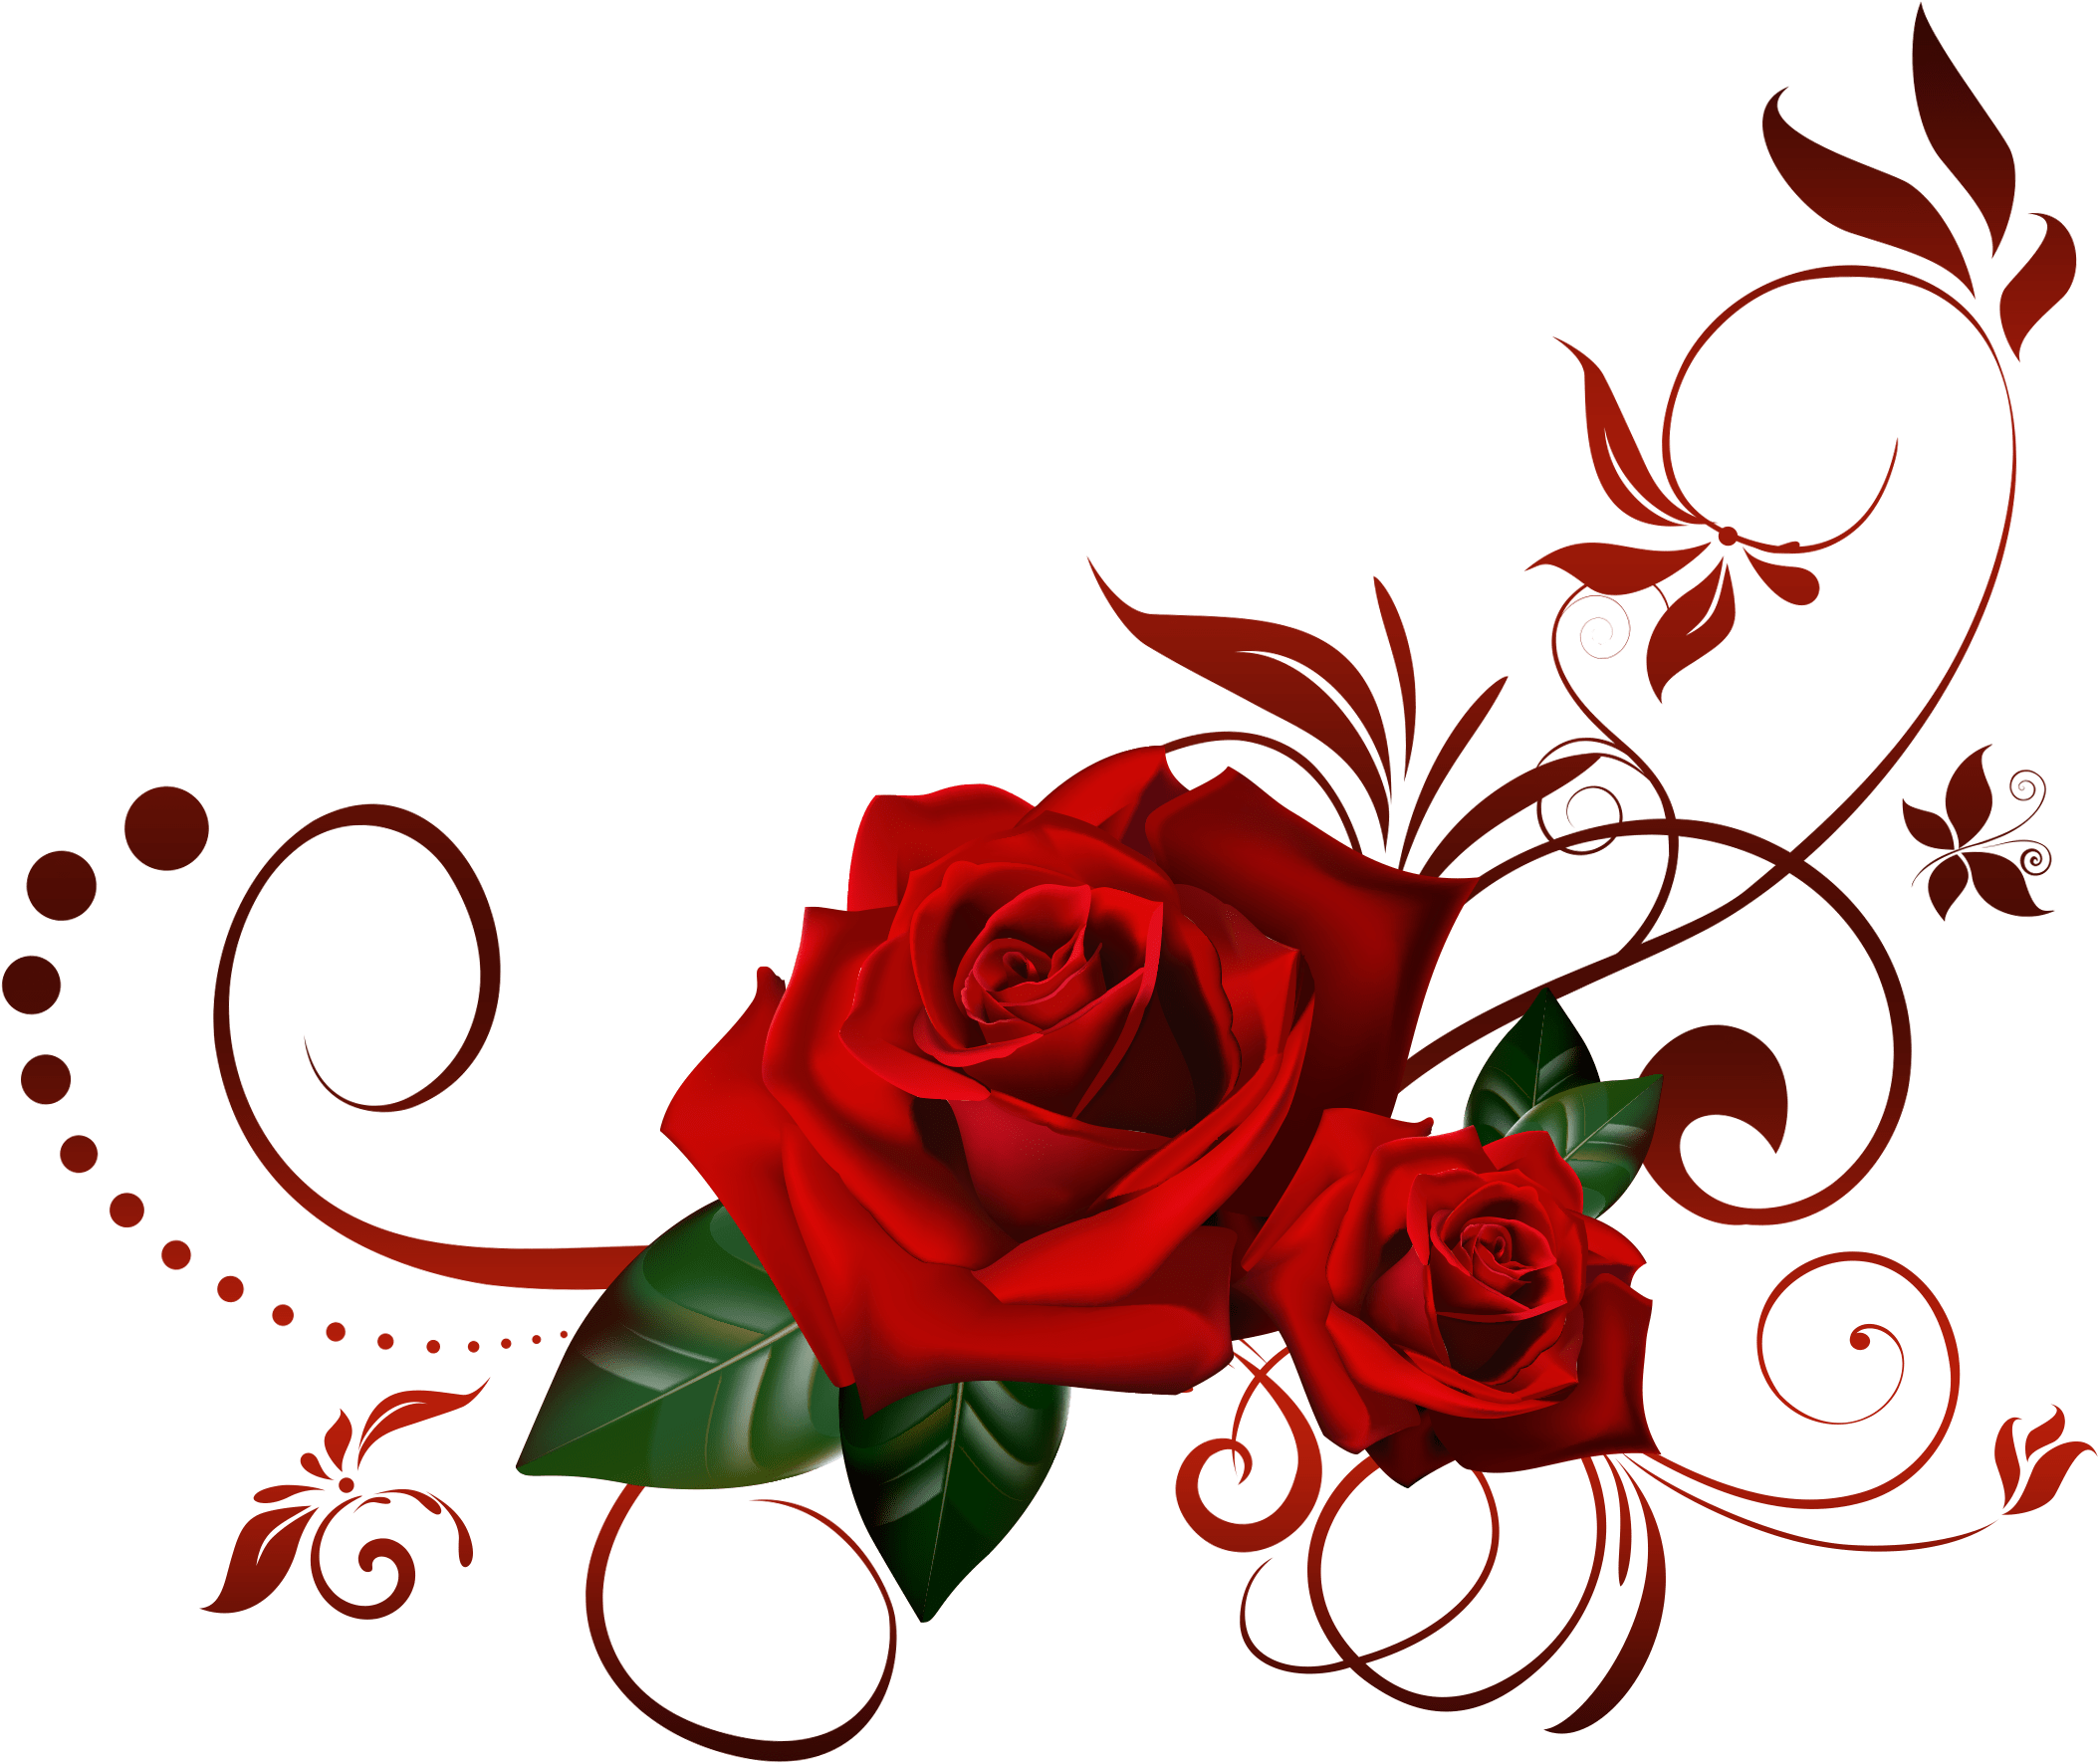 Red rose border png. Download the crown black